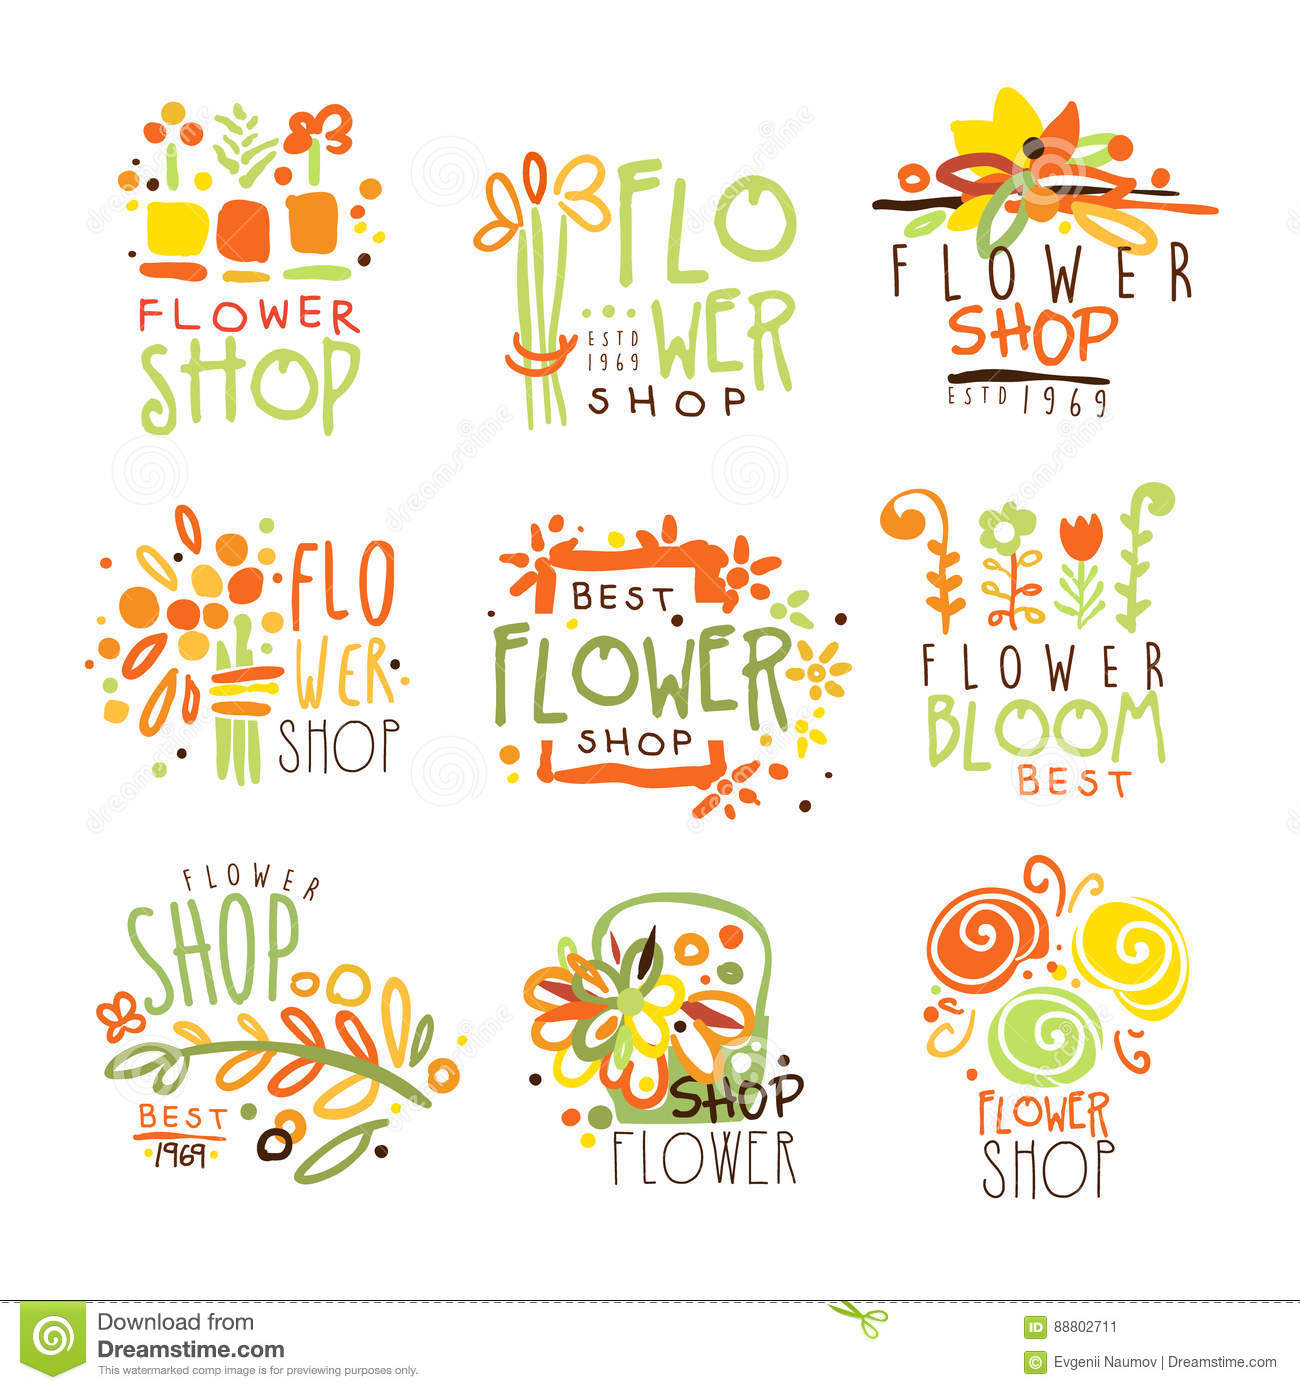 Flower Shop Red Yellow And Green Colorful Graphic Design Template